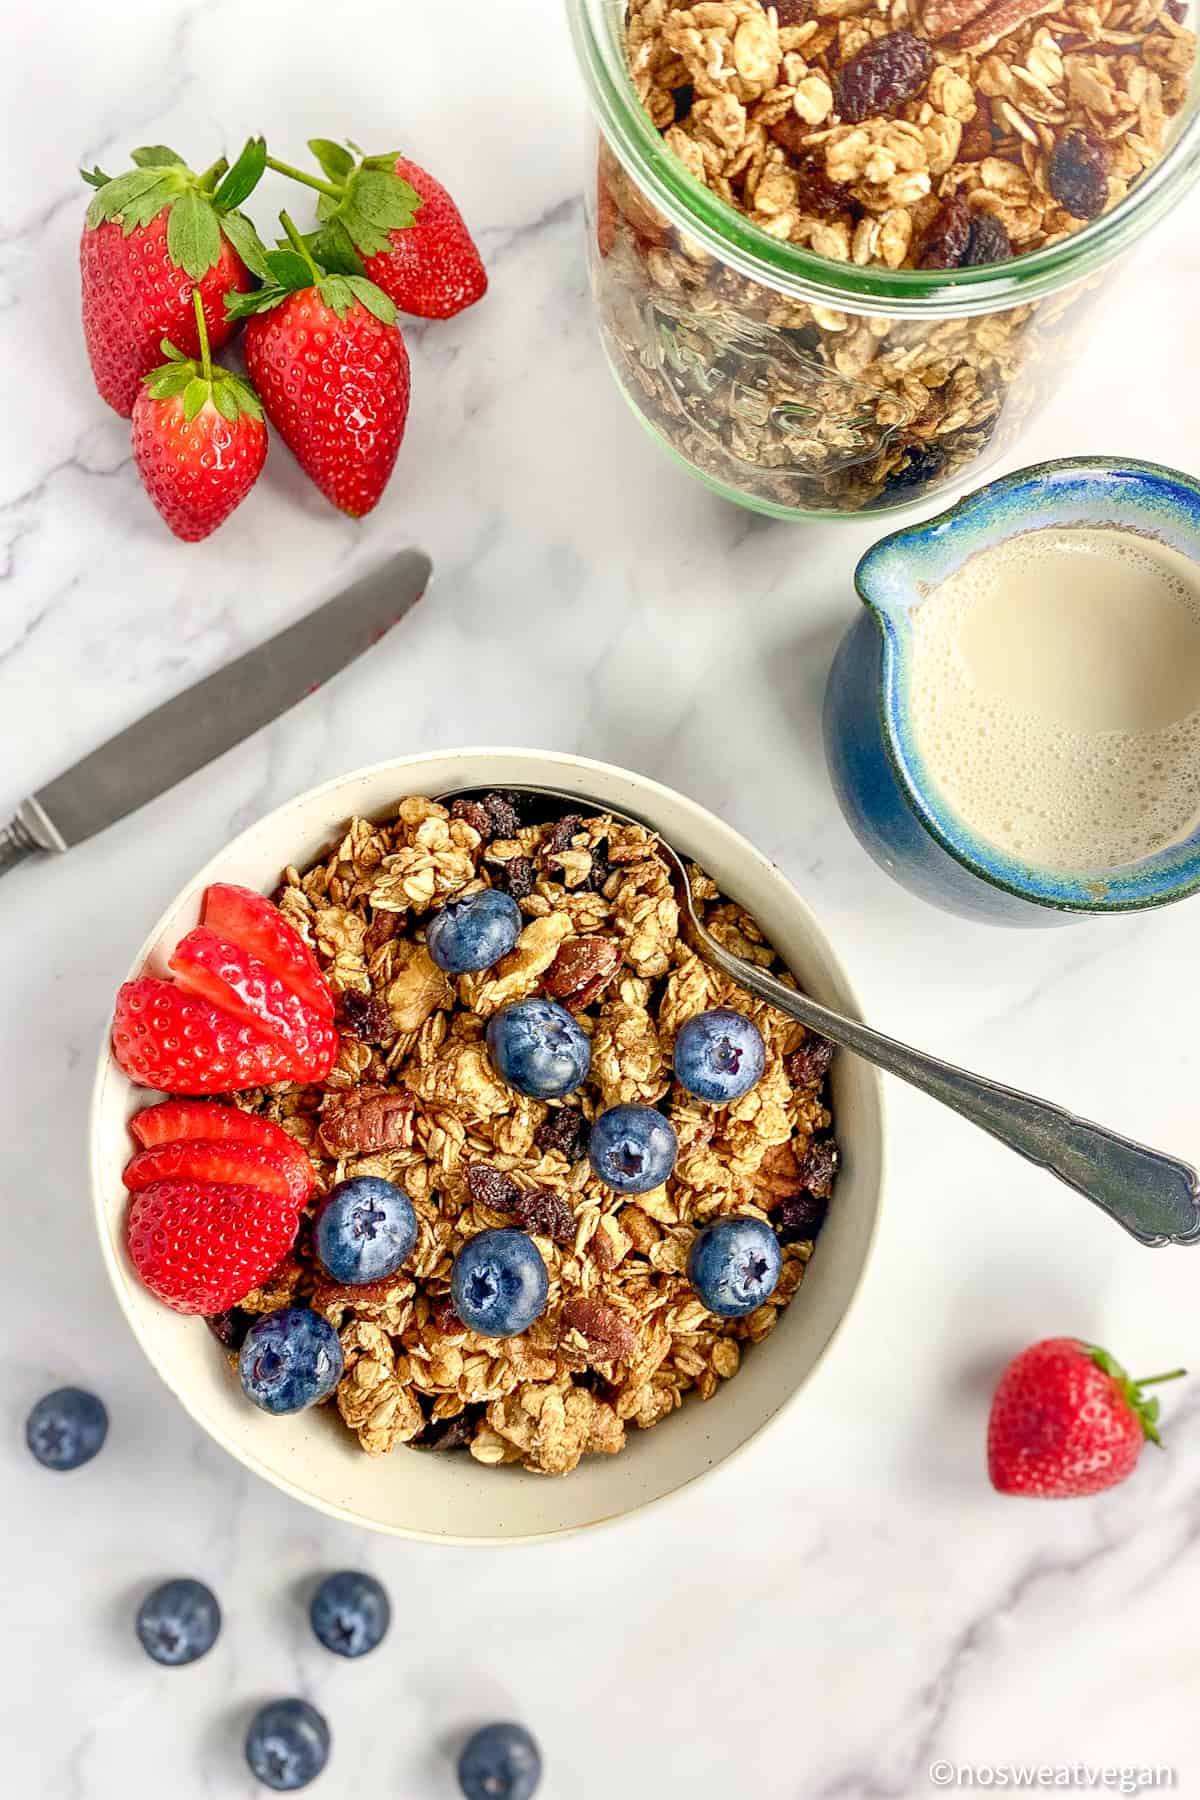 vegan granola (oil-free) with berries and soy milk